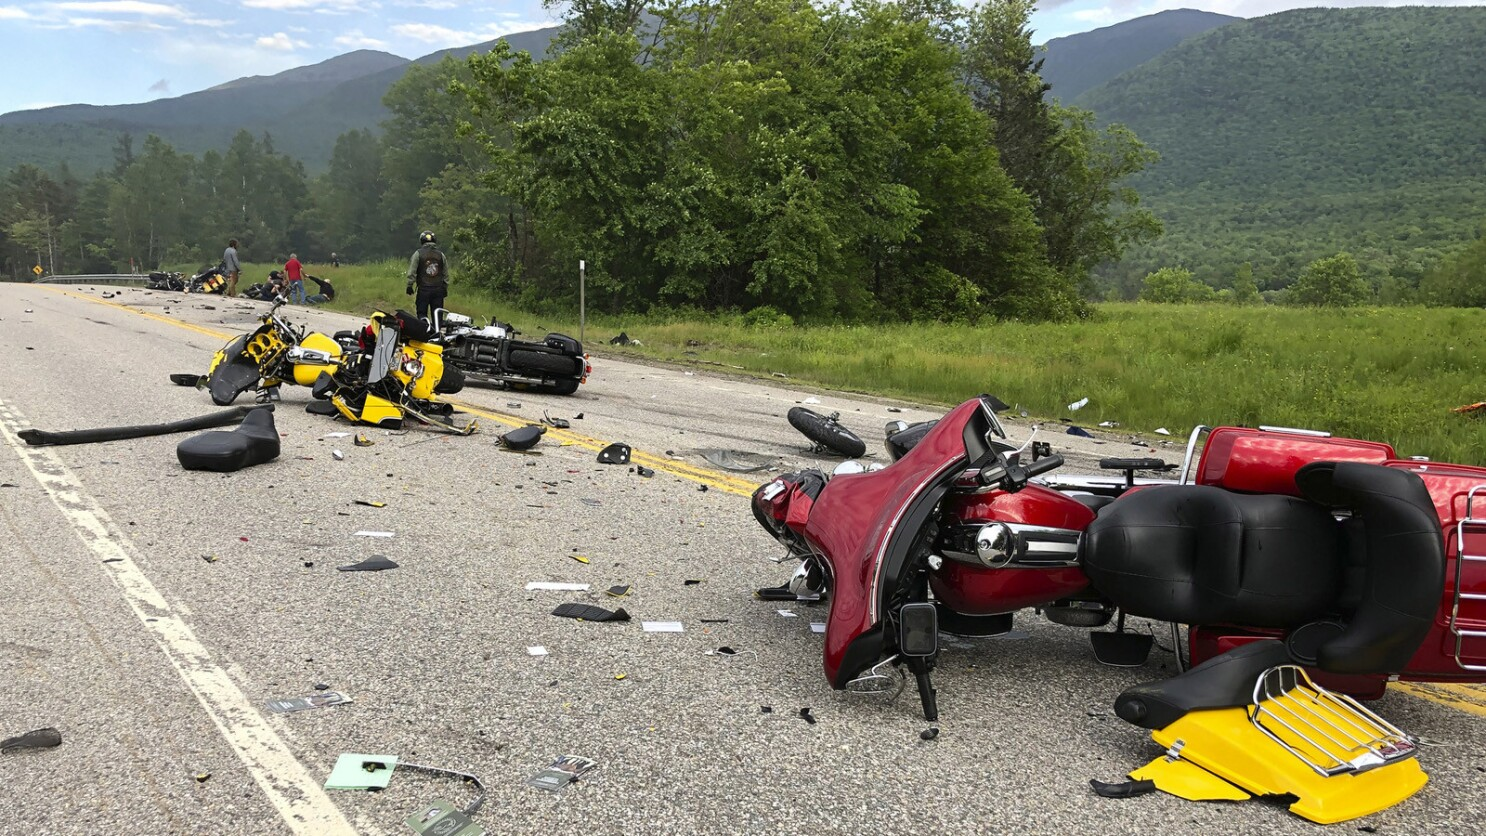 7 Dead And 3 Hurt As Pickup Collides With Motorcycles In New